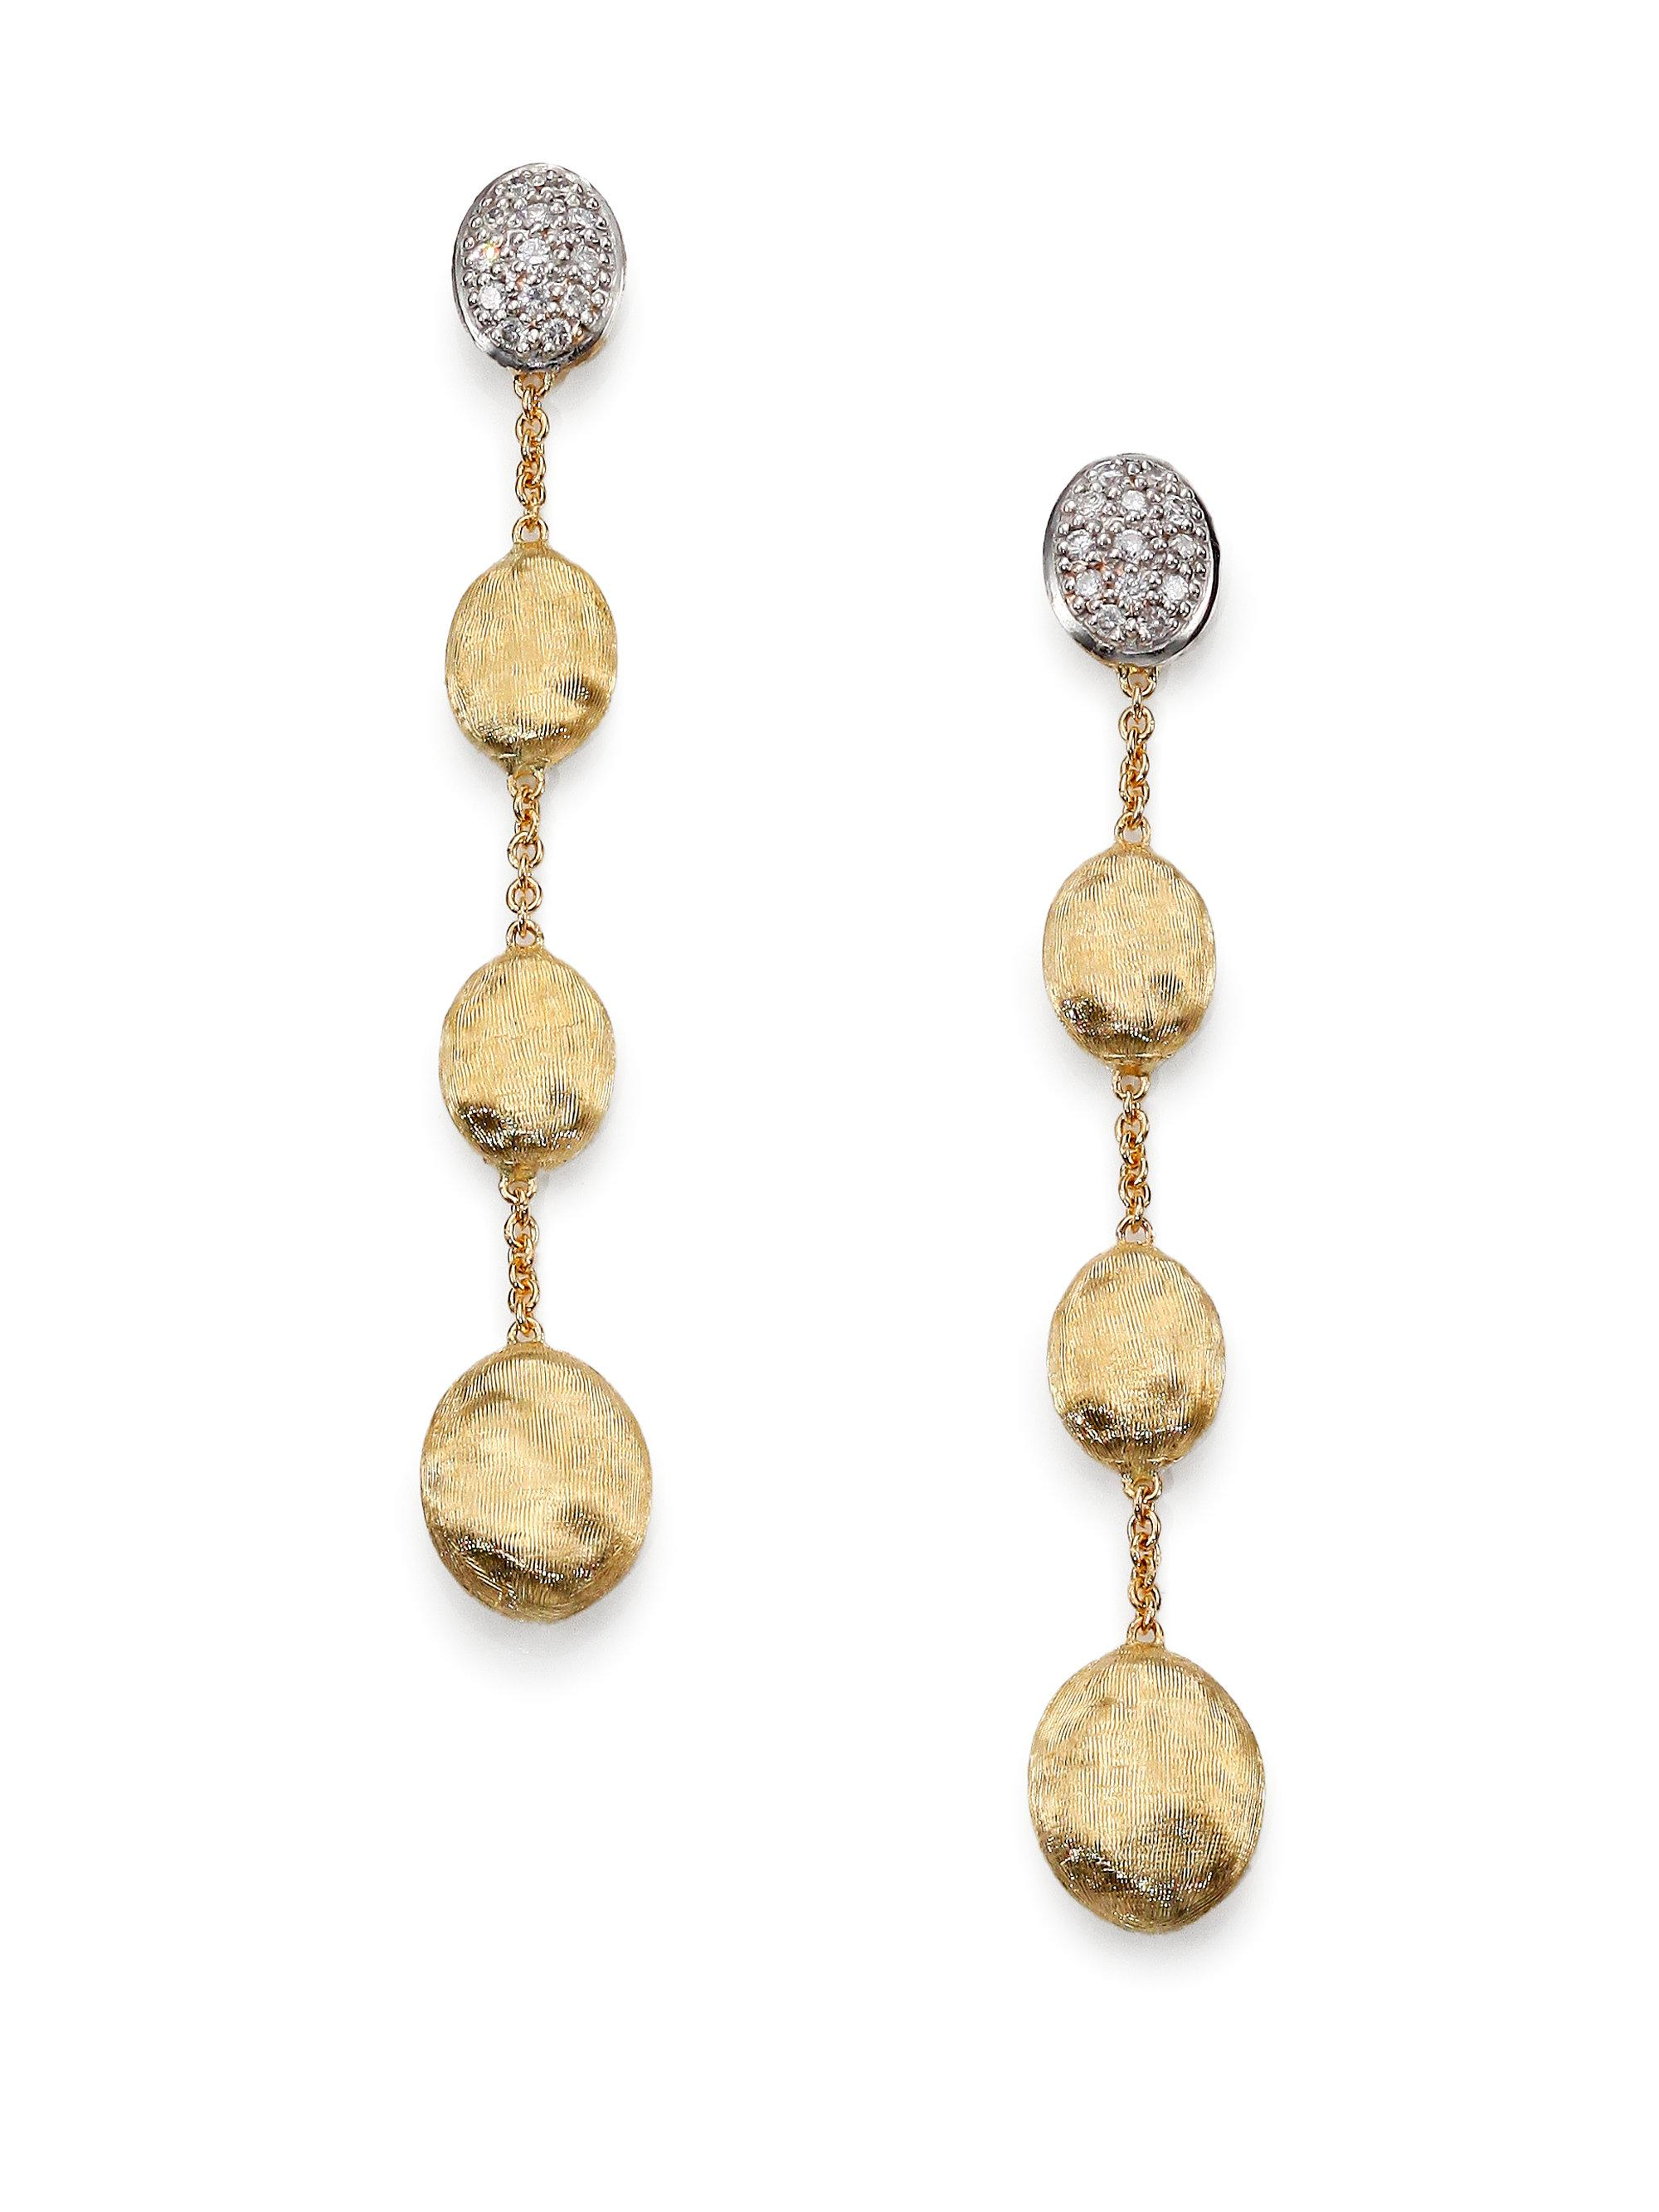 Marco Bicego Siviglia 18K Gold & Pavé Diamond Double-Drop Earrings hlfgPDFjs